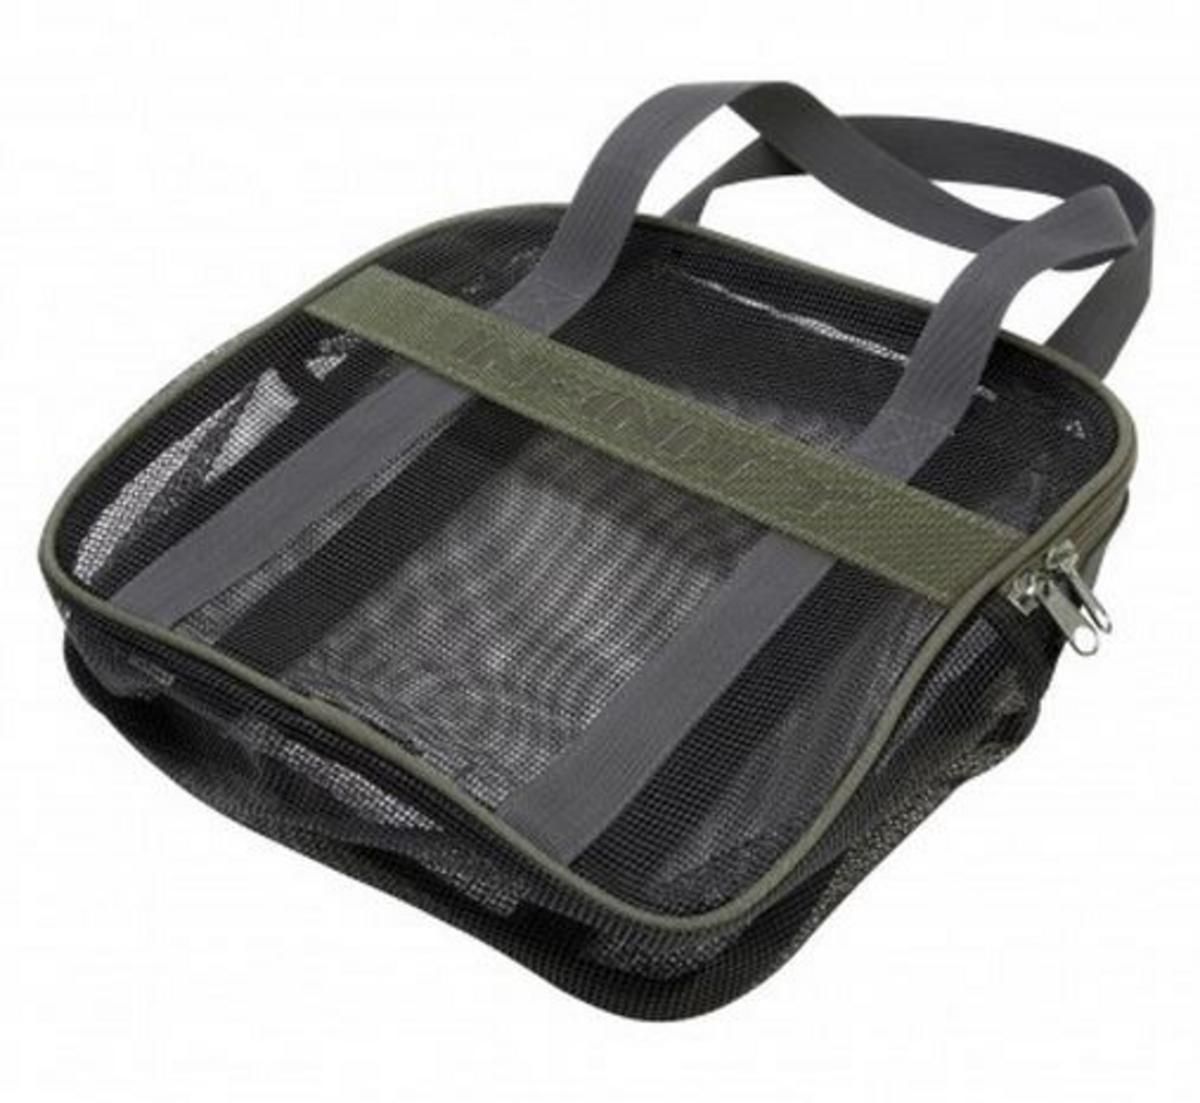 NEW DAIWA INFINITY BOILIE DRYMESH BAG XL MODEL NO. DIMBDB2